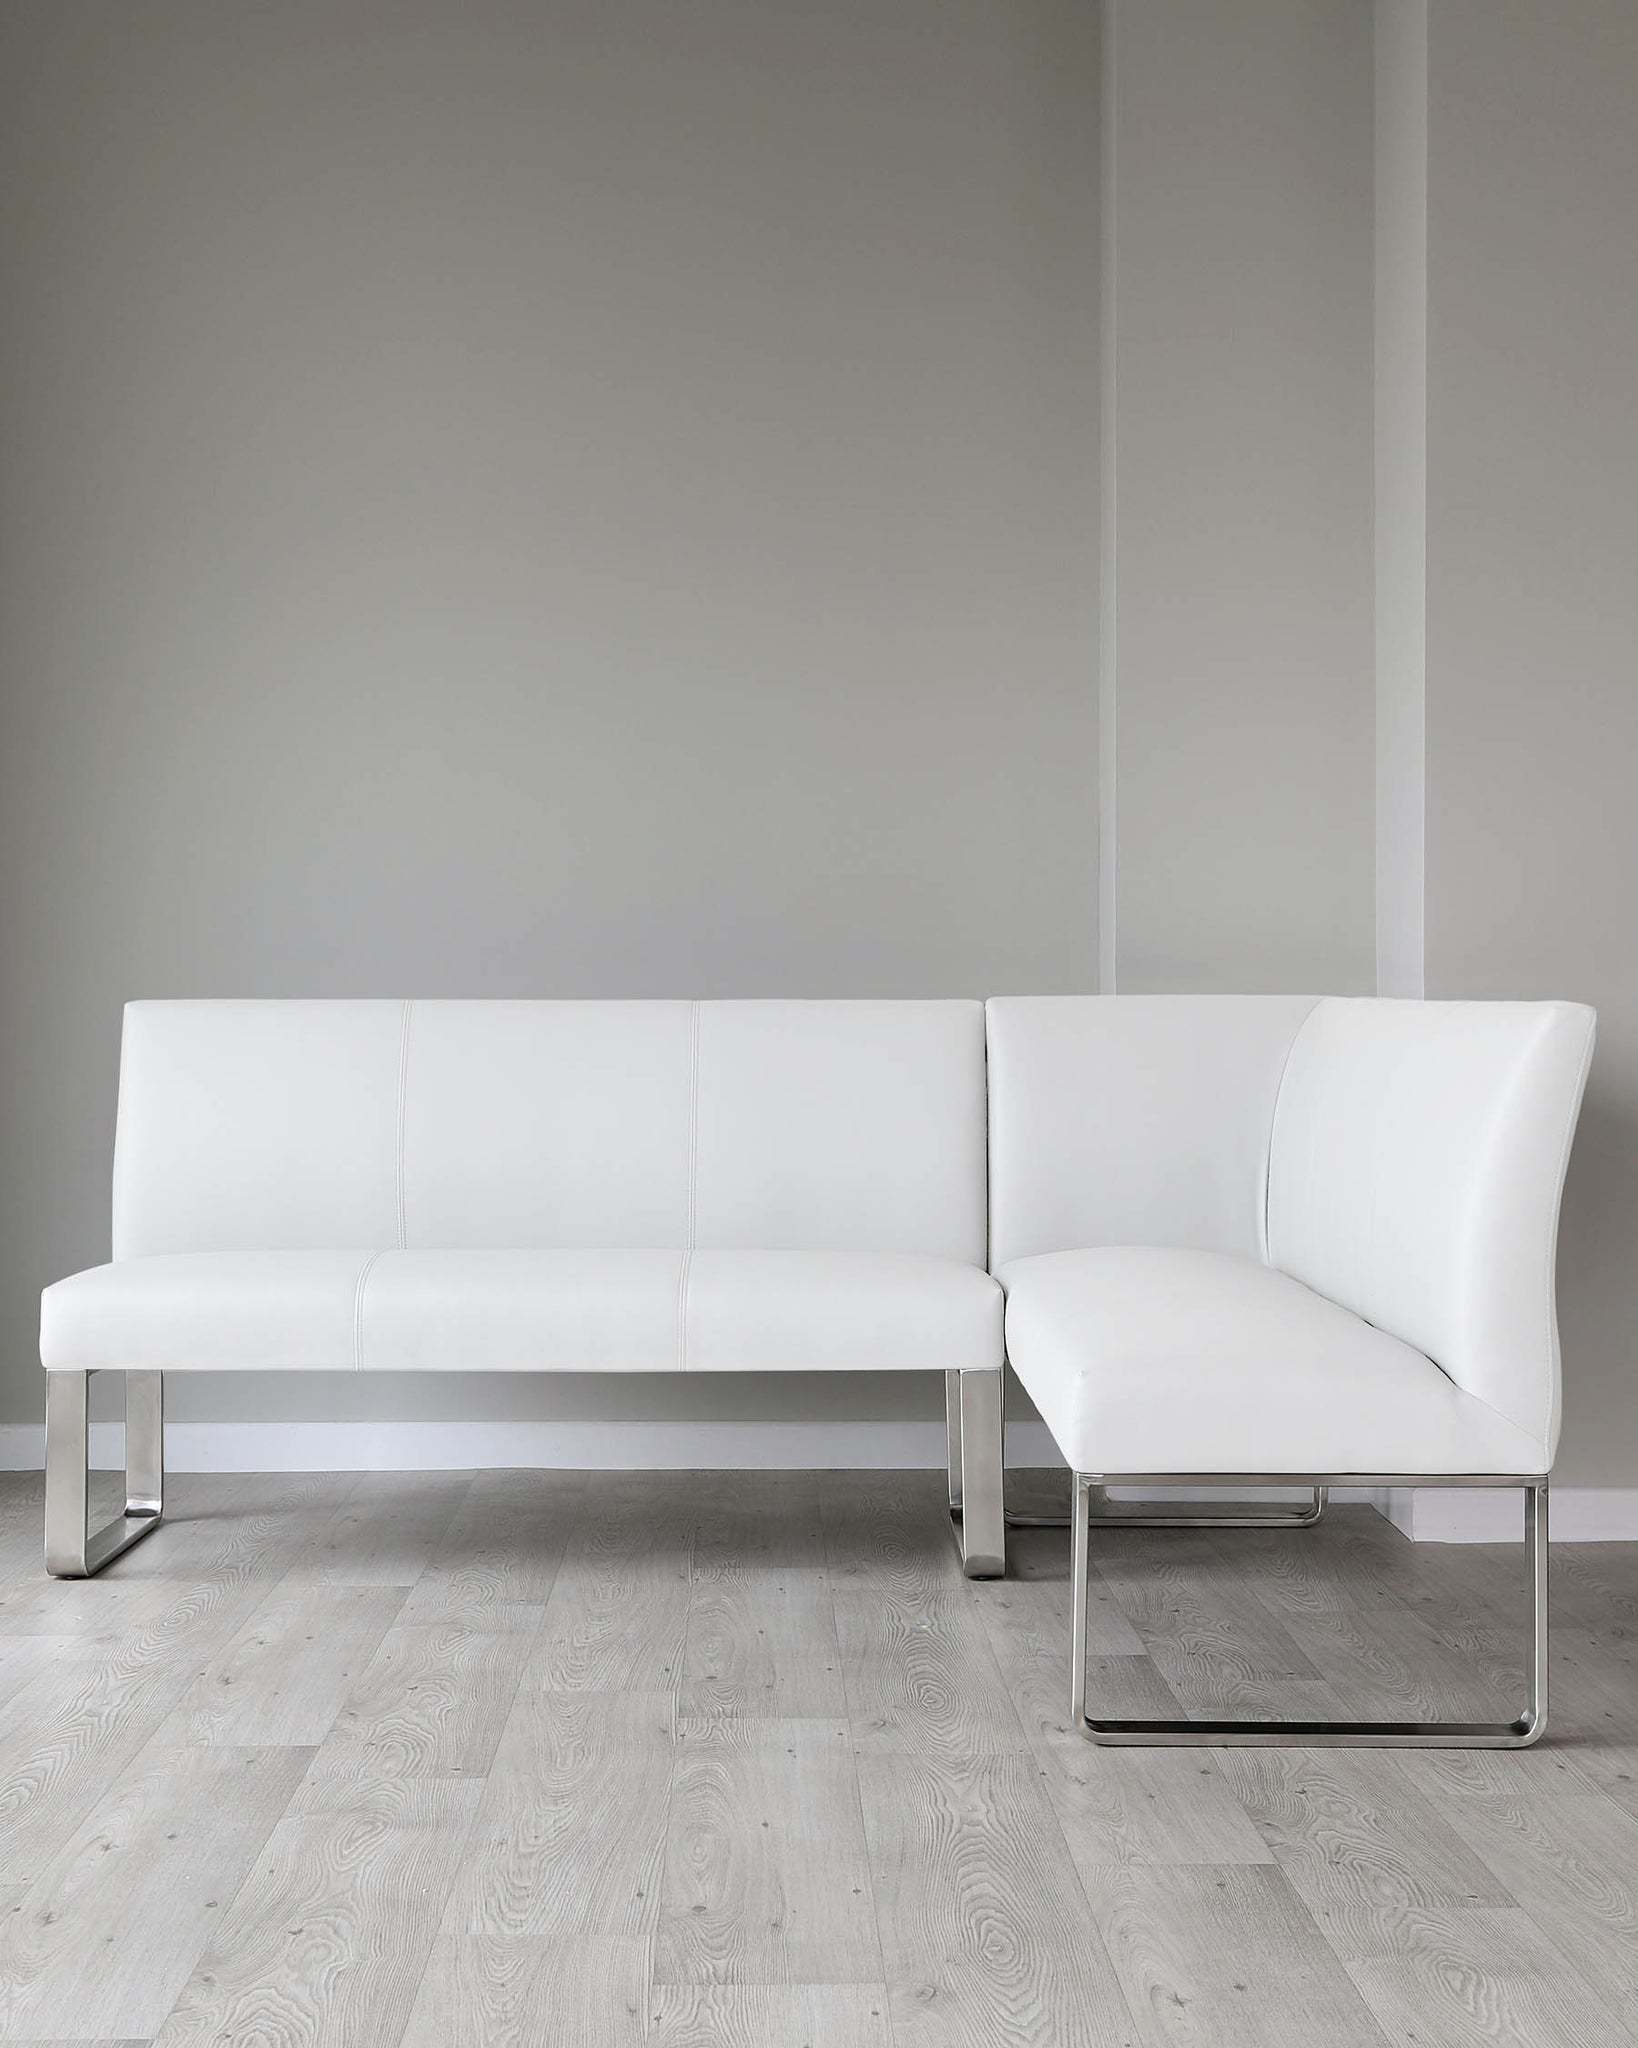 Sanza White Gloss And Loop 5 Seater Left Hand Corner Bench Dining Set